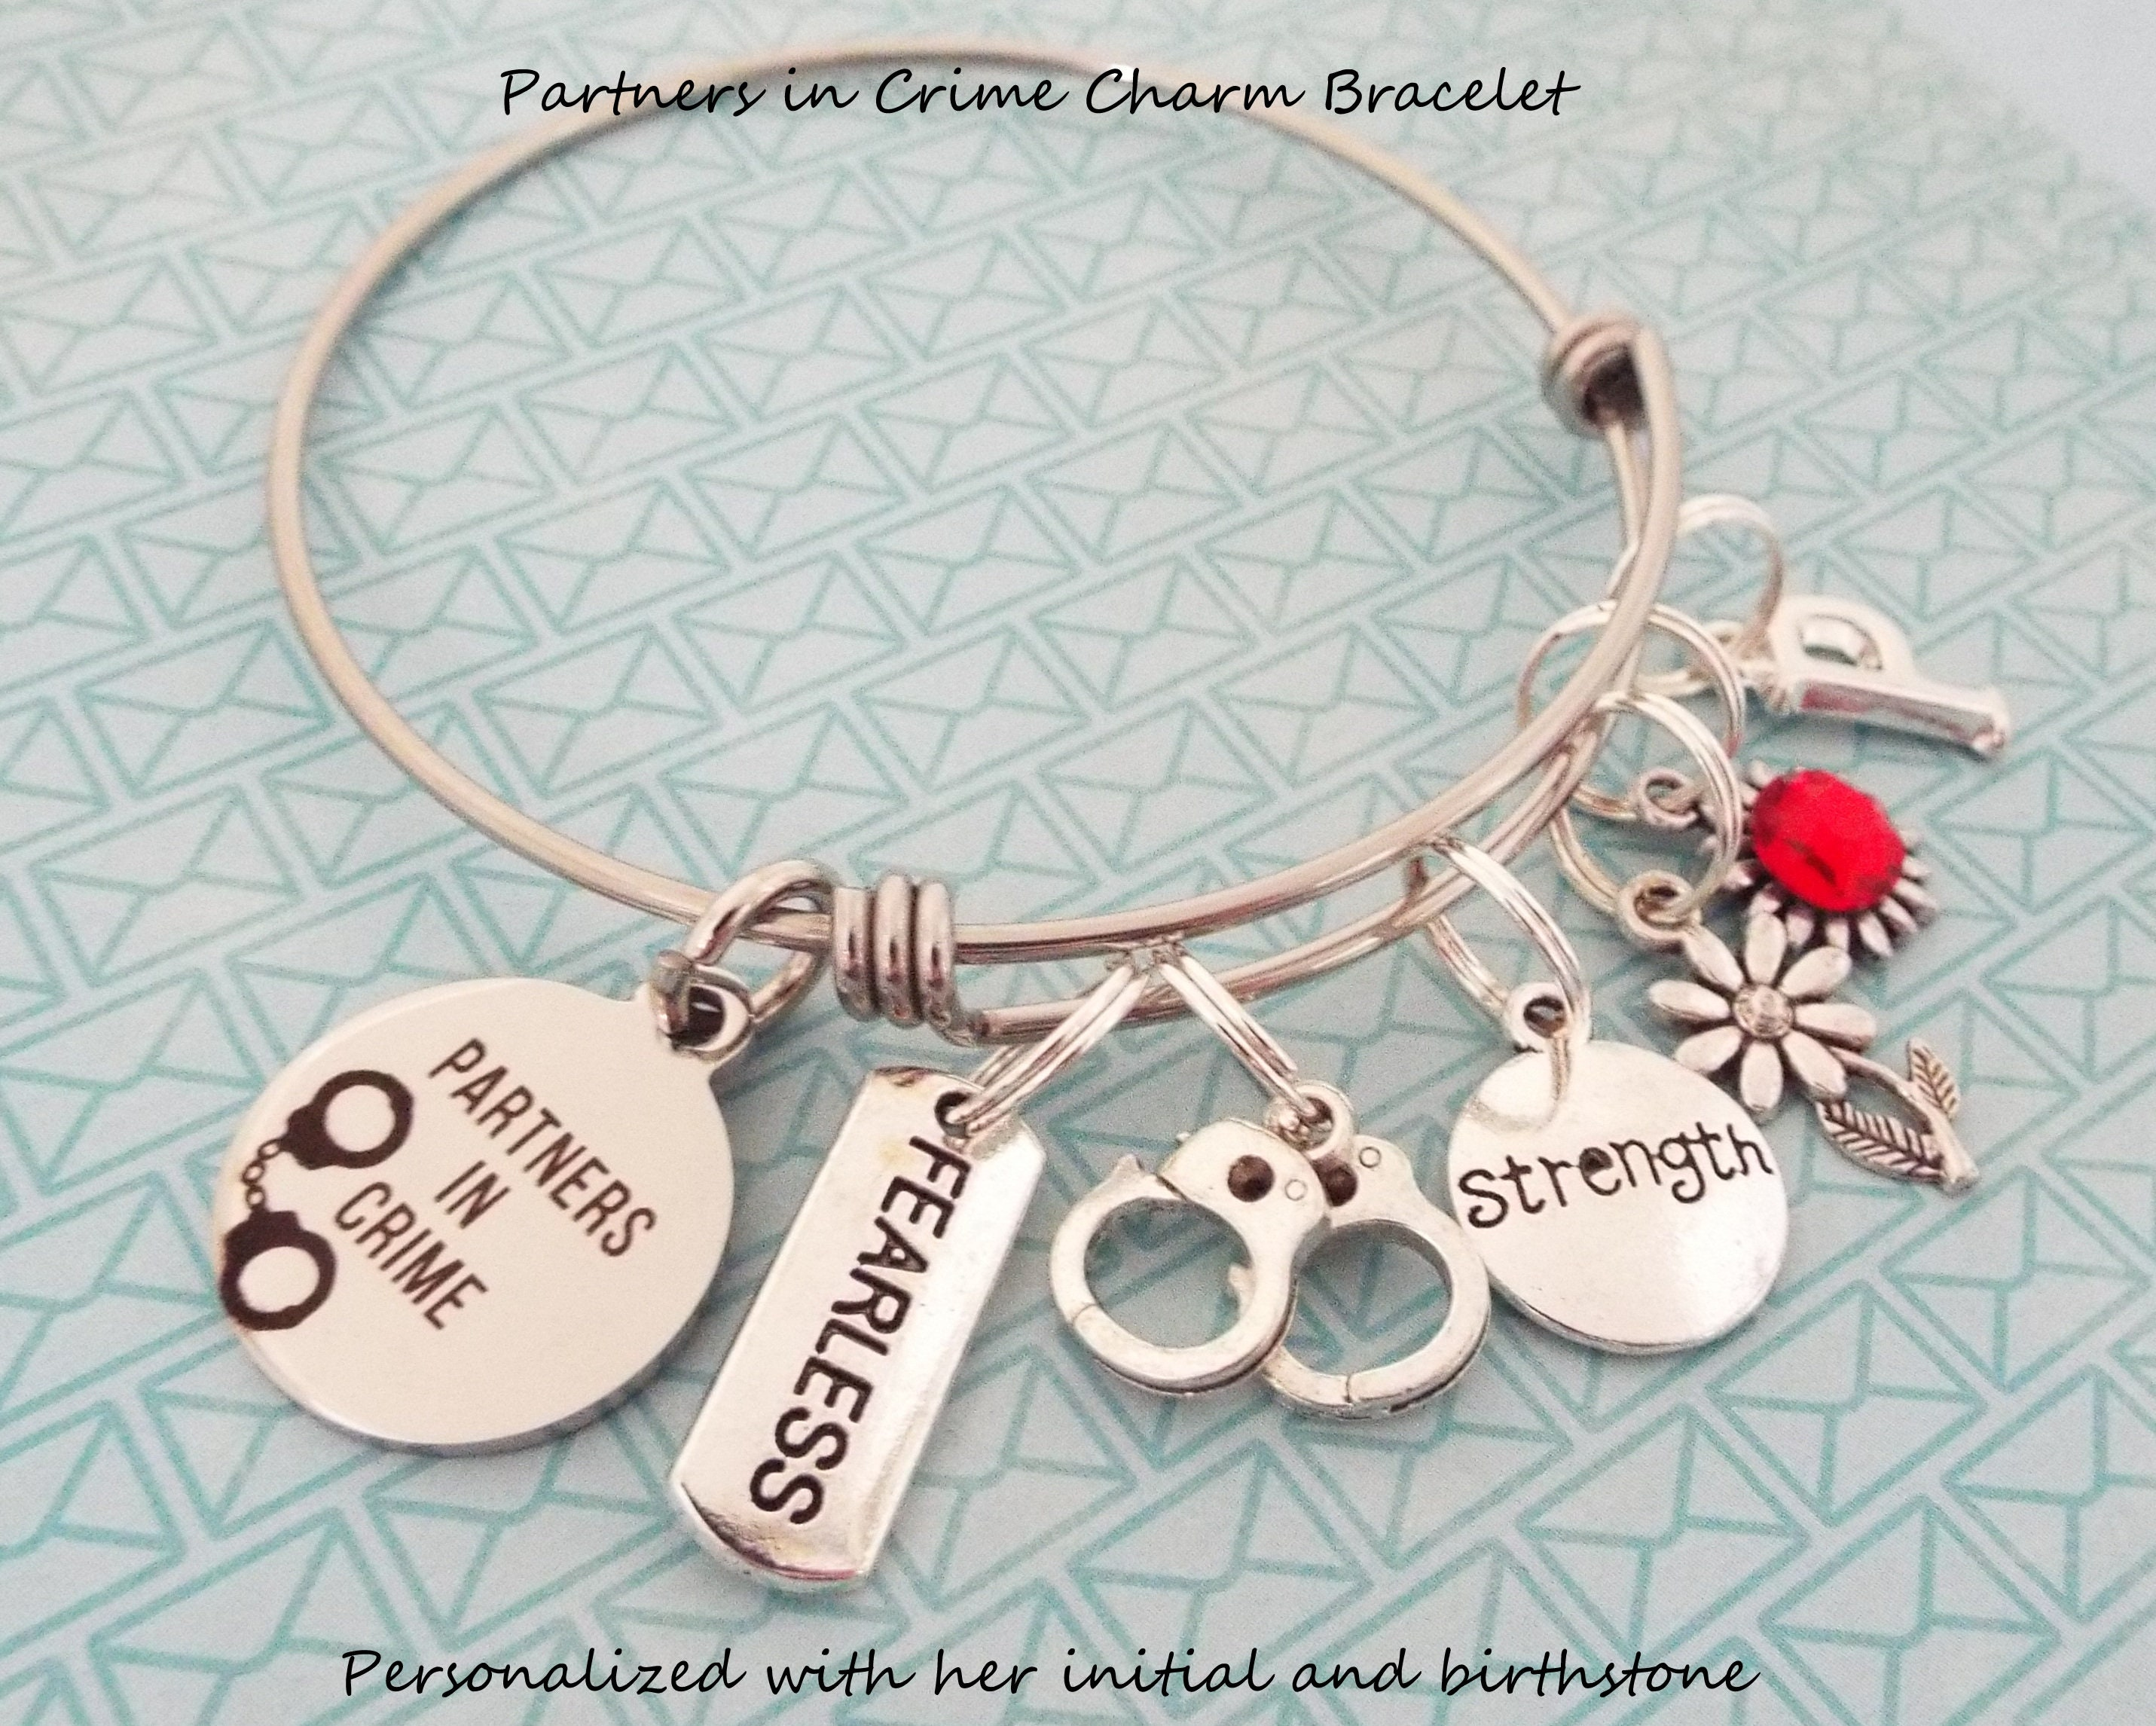 Best Friend Birthday Gift Partners In Crime Charm Bracelet For